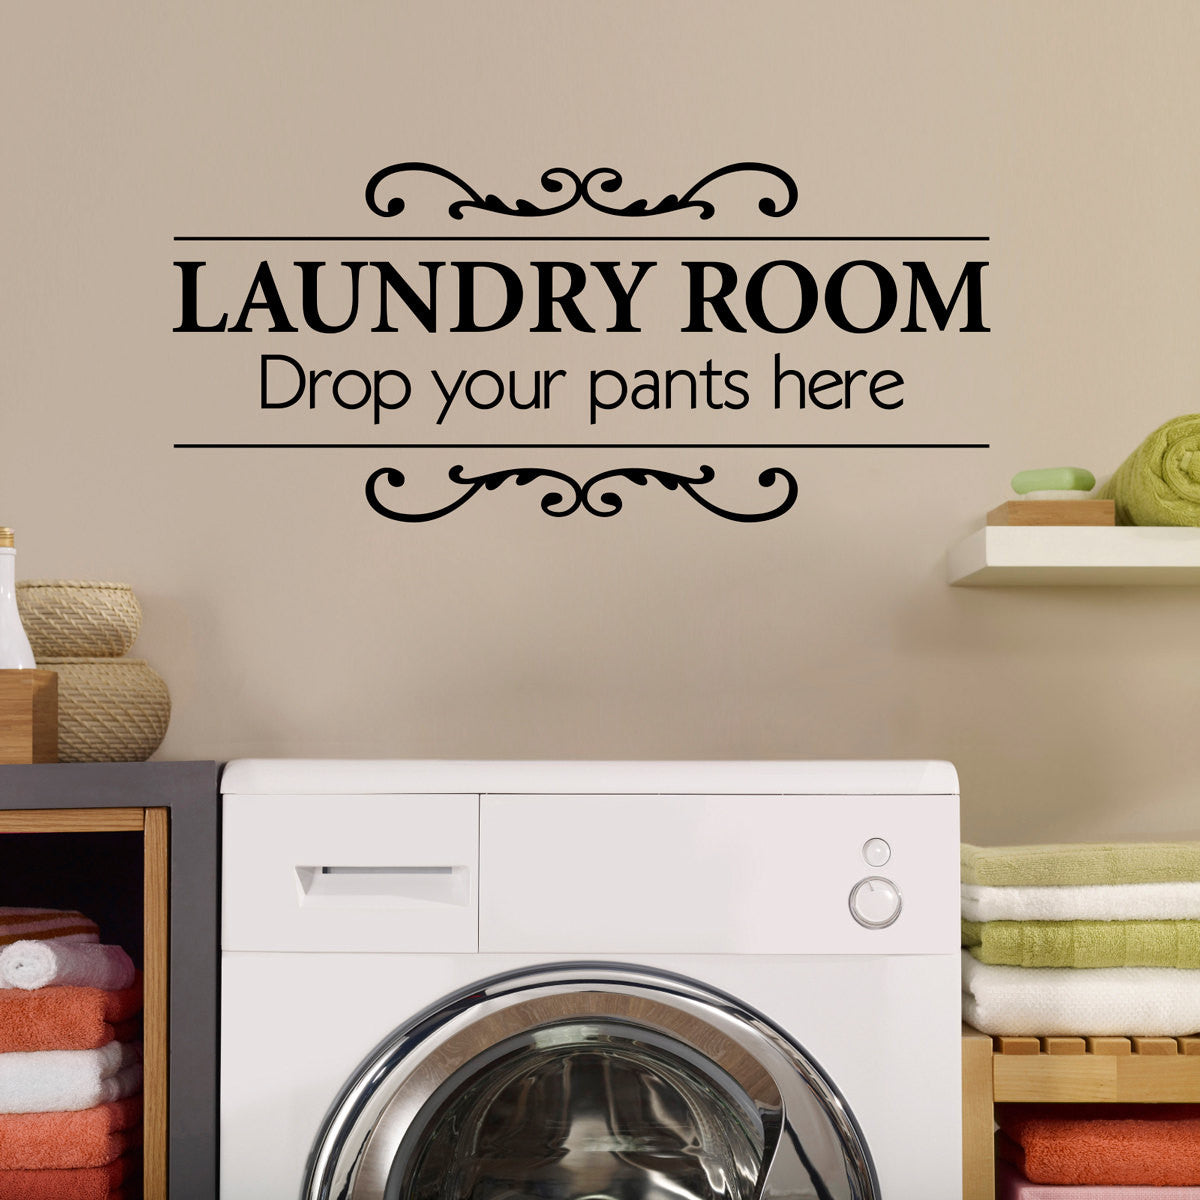 Laundry Room Wall Decal   Drop Your Pants Here   Utility Room Decal   Large